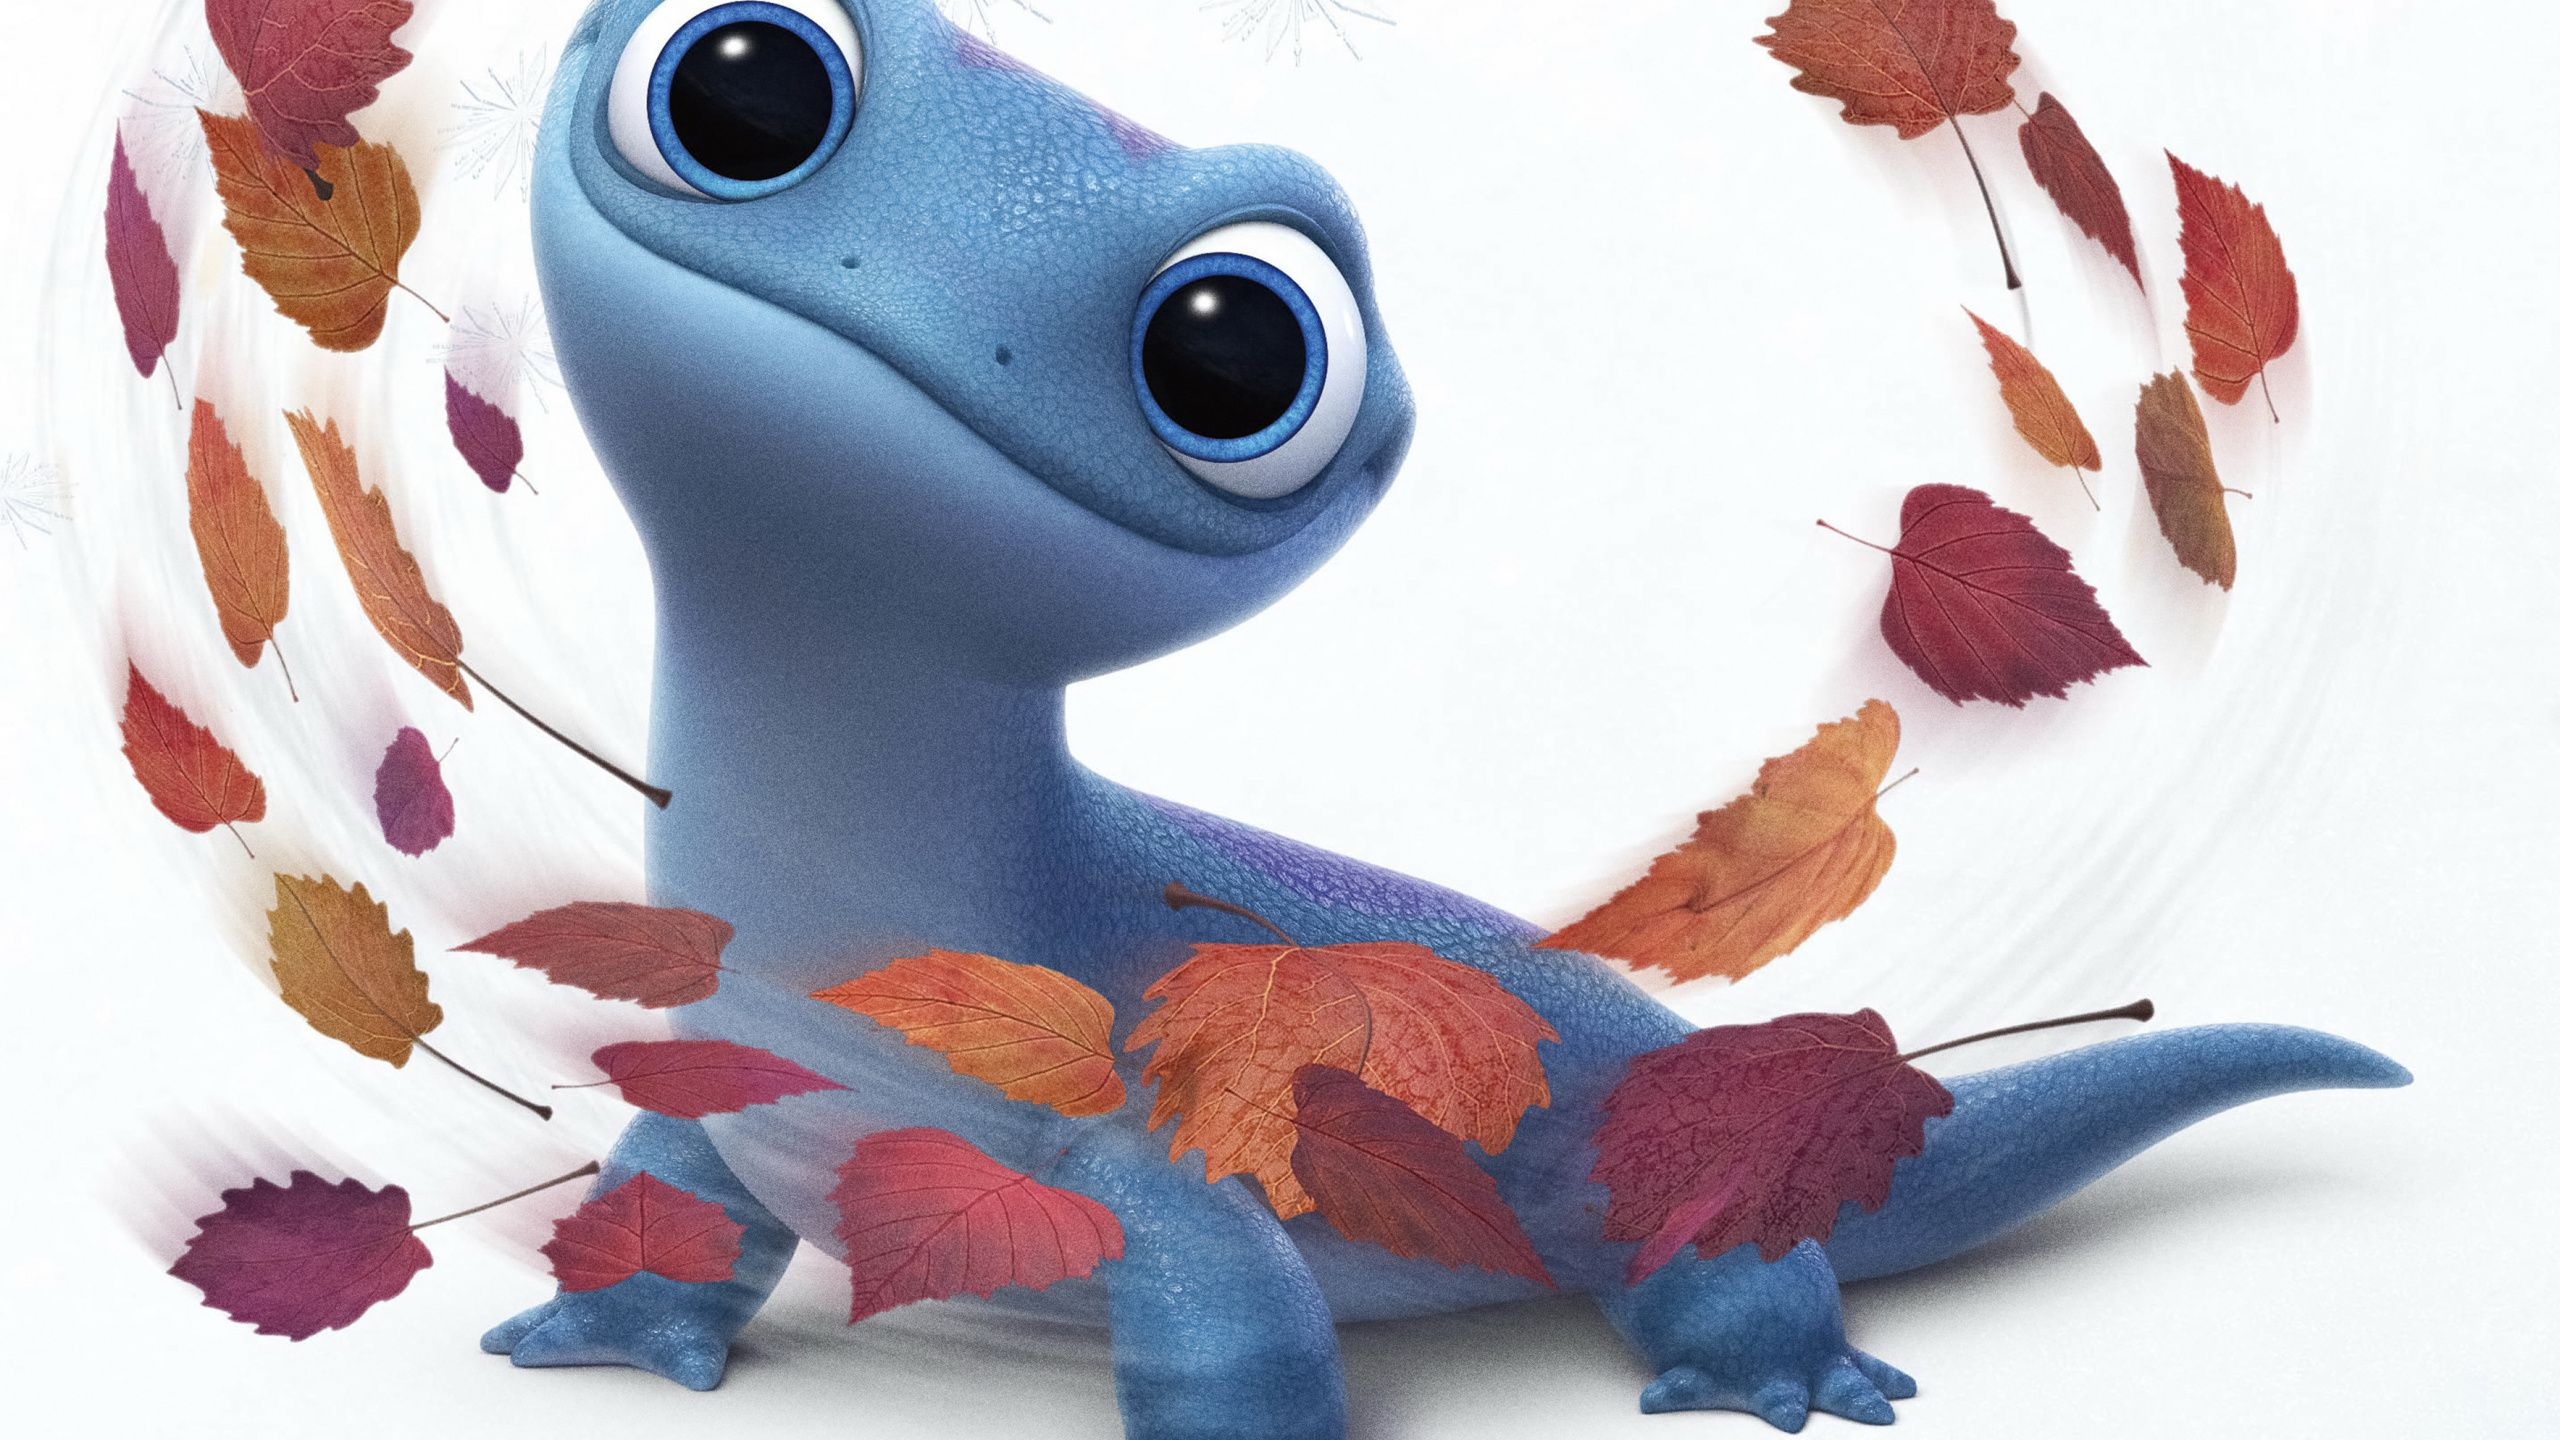 2560x1440 Lizard, cute, Frozen 2, movie wallpaper